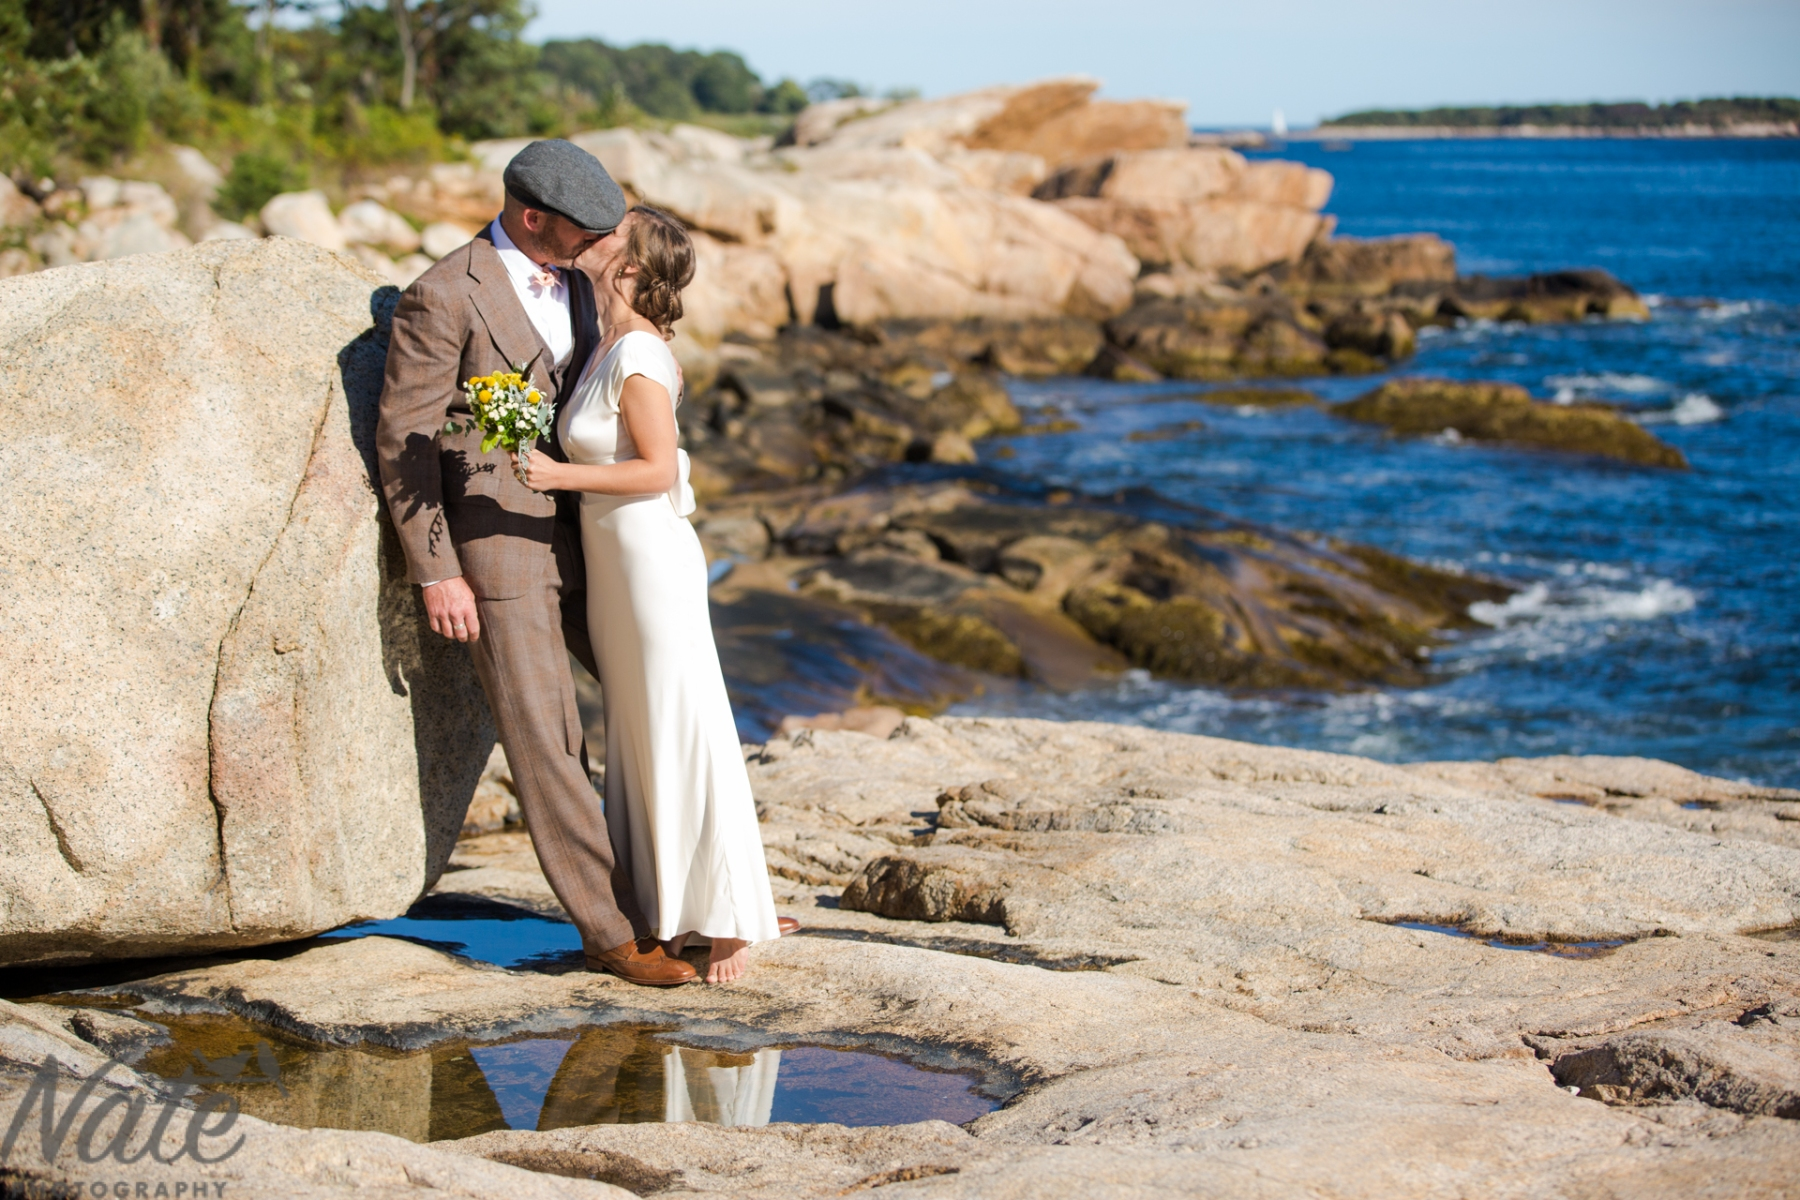 Kate and Eliot are married at the Stone House at Sharksmouth in Manchester-by-the-Sea. Photos by Nate Photography